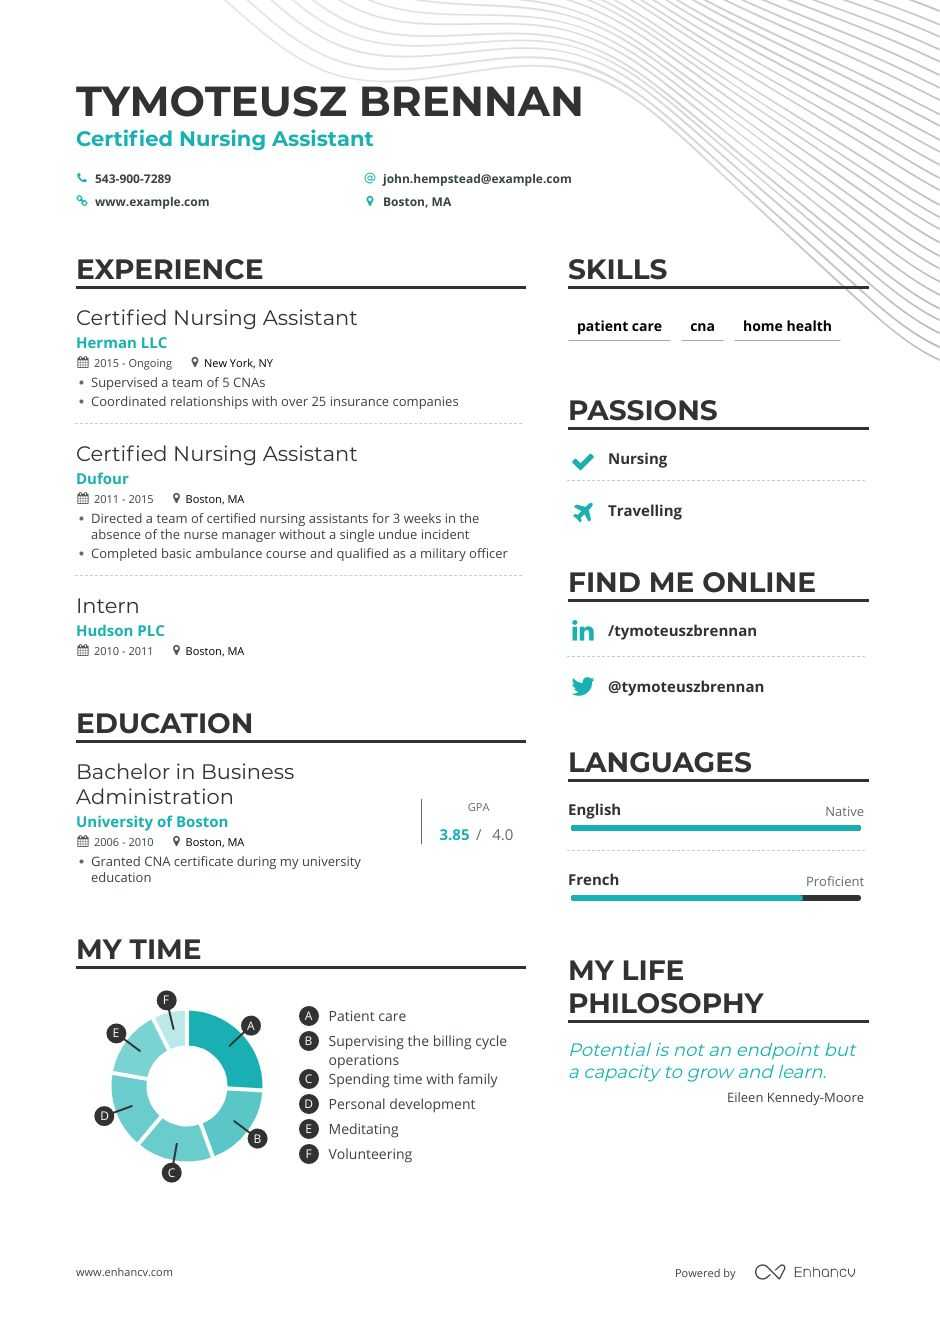 certified nursing assistant resume samples and writing guide for enhancv microservices Resume Nursing Assistant Resume